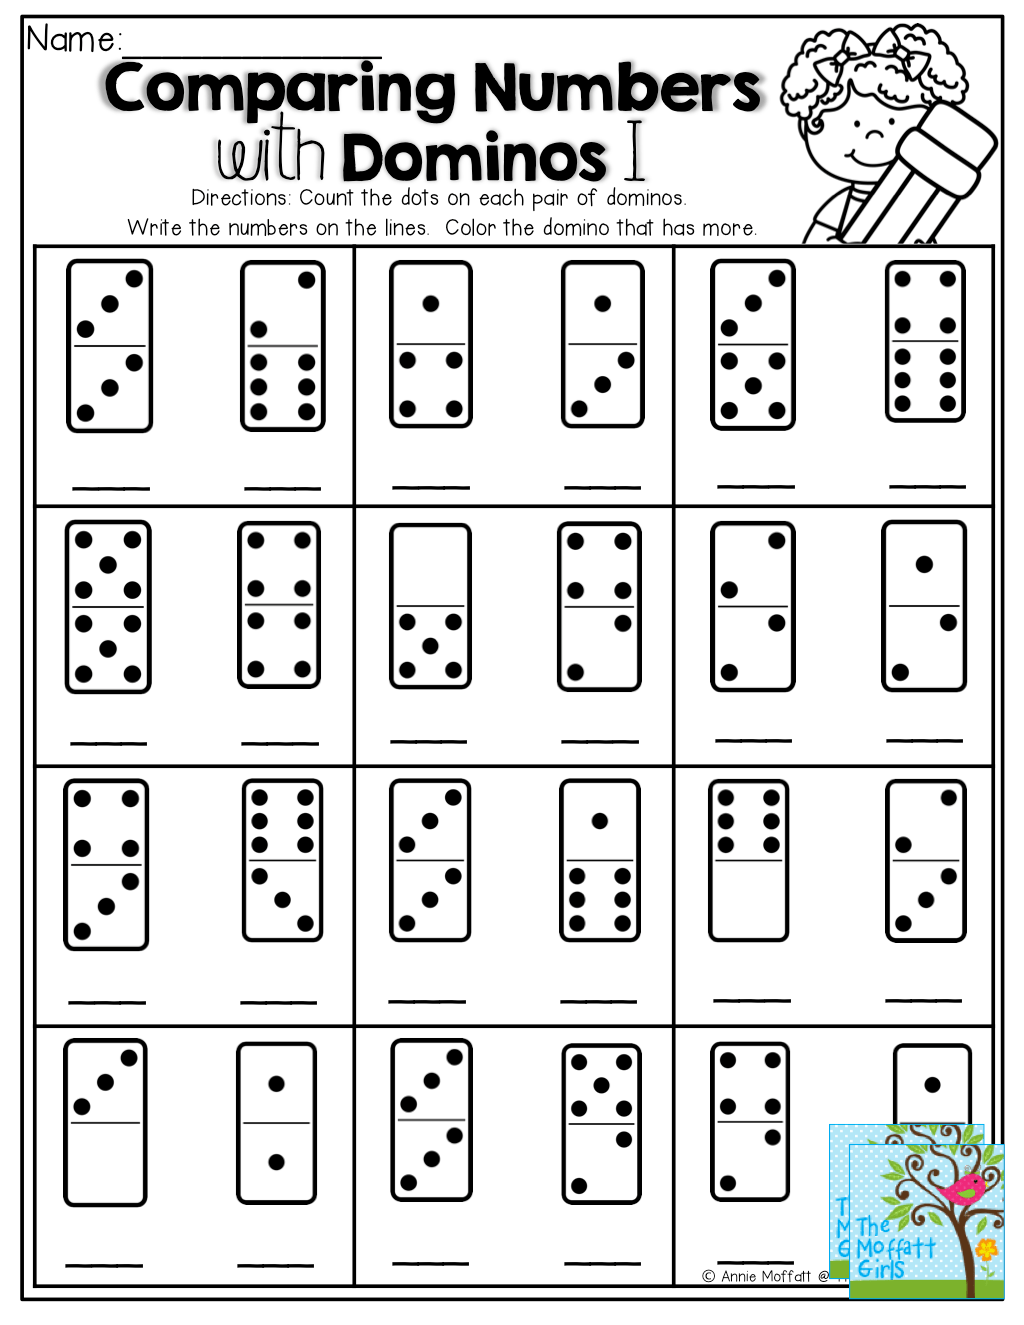 Comparing Numbers Count The Dots On The Domino Write The Number Color The Domino That Has